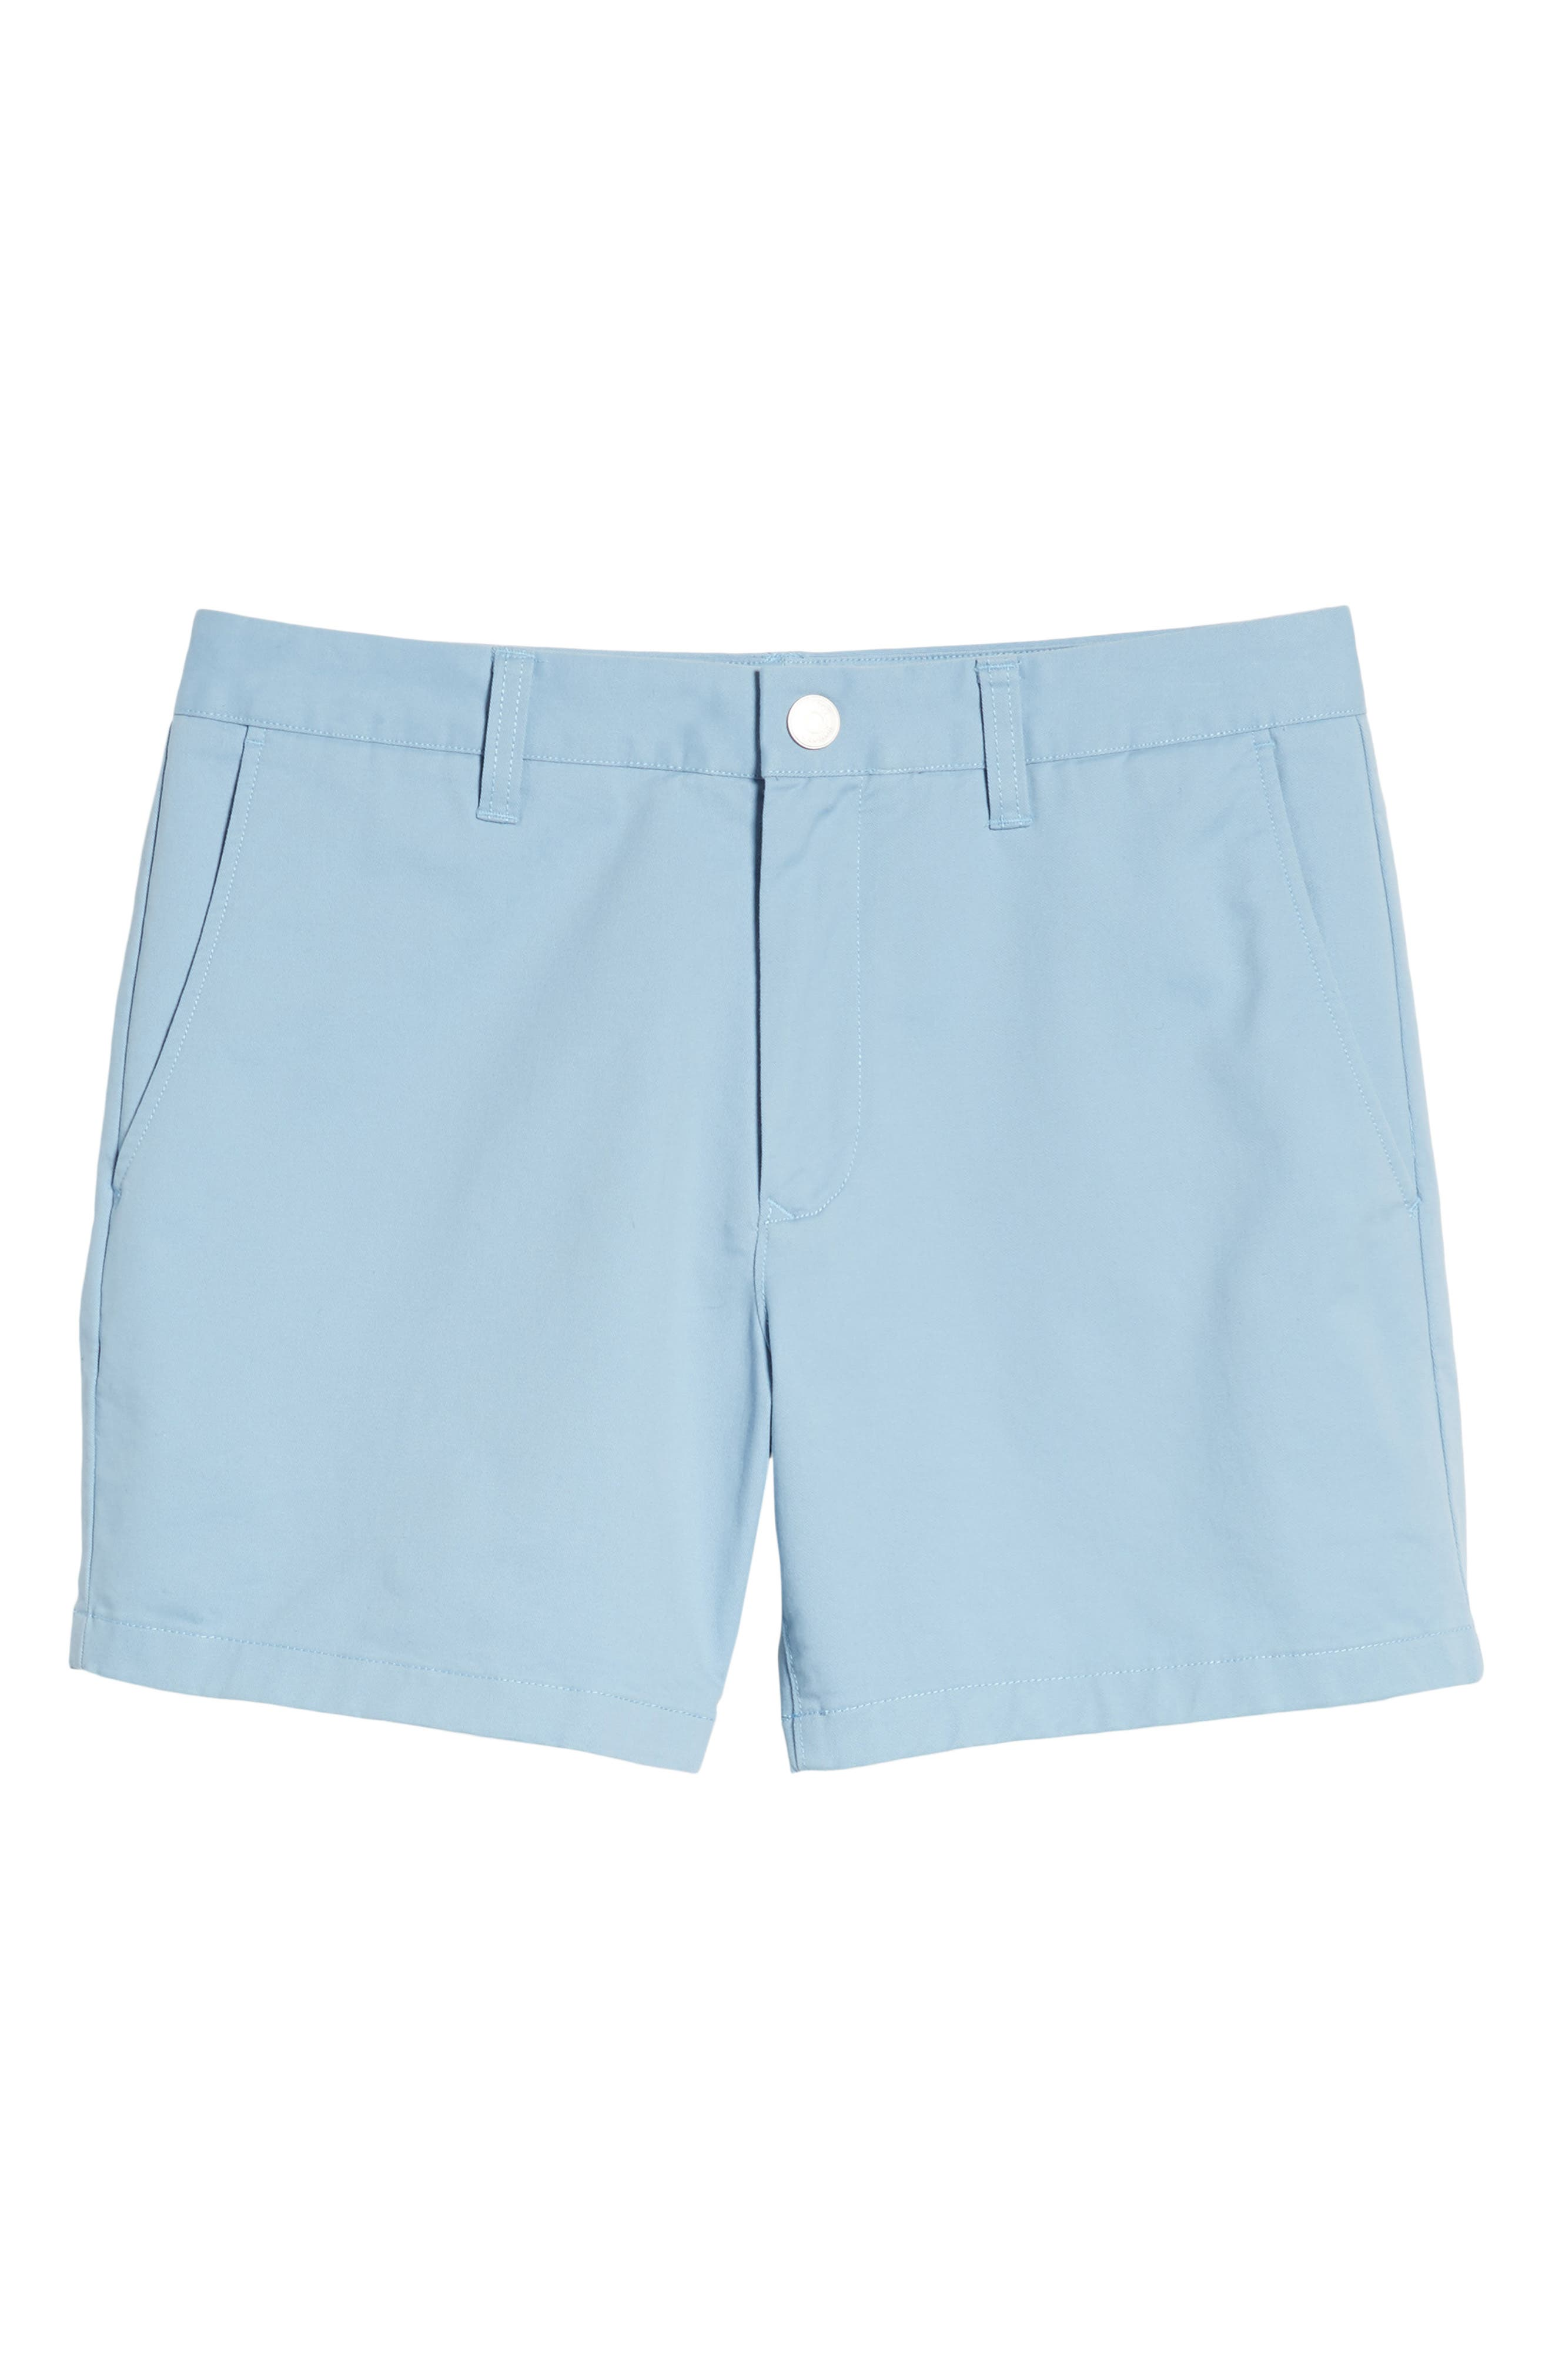 Stretch Washed Chino 5-Inch Shorts,                             Alternate thumbnail 151, color,